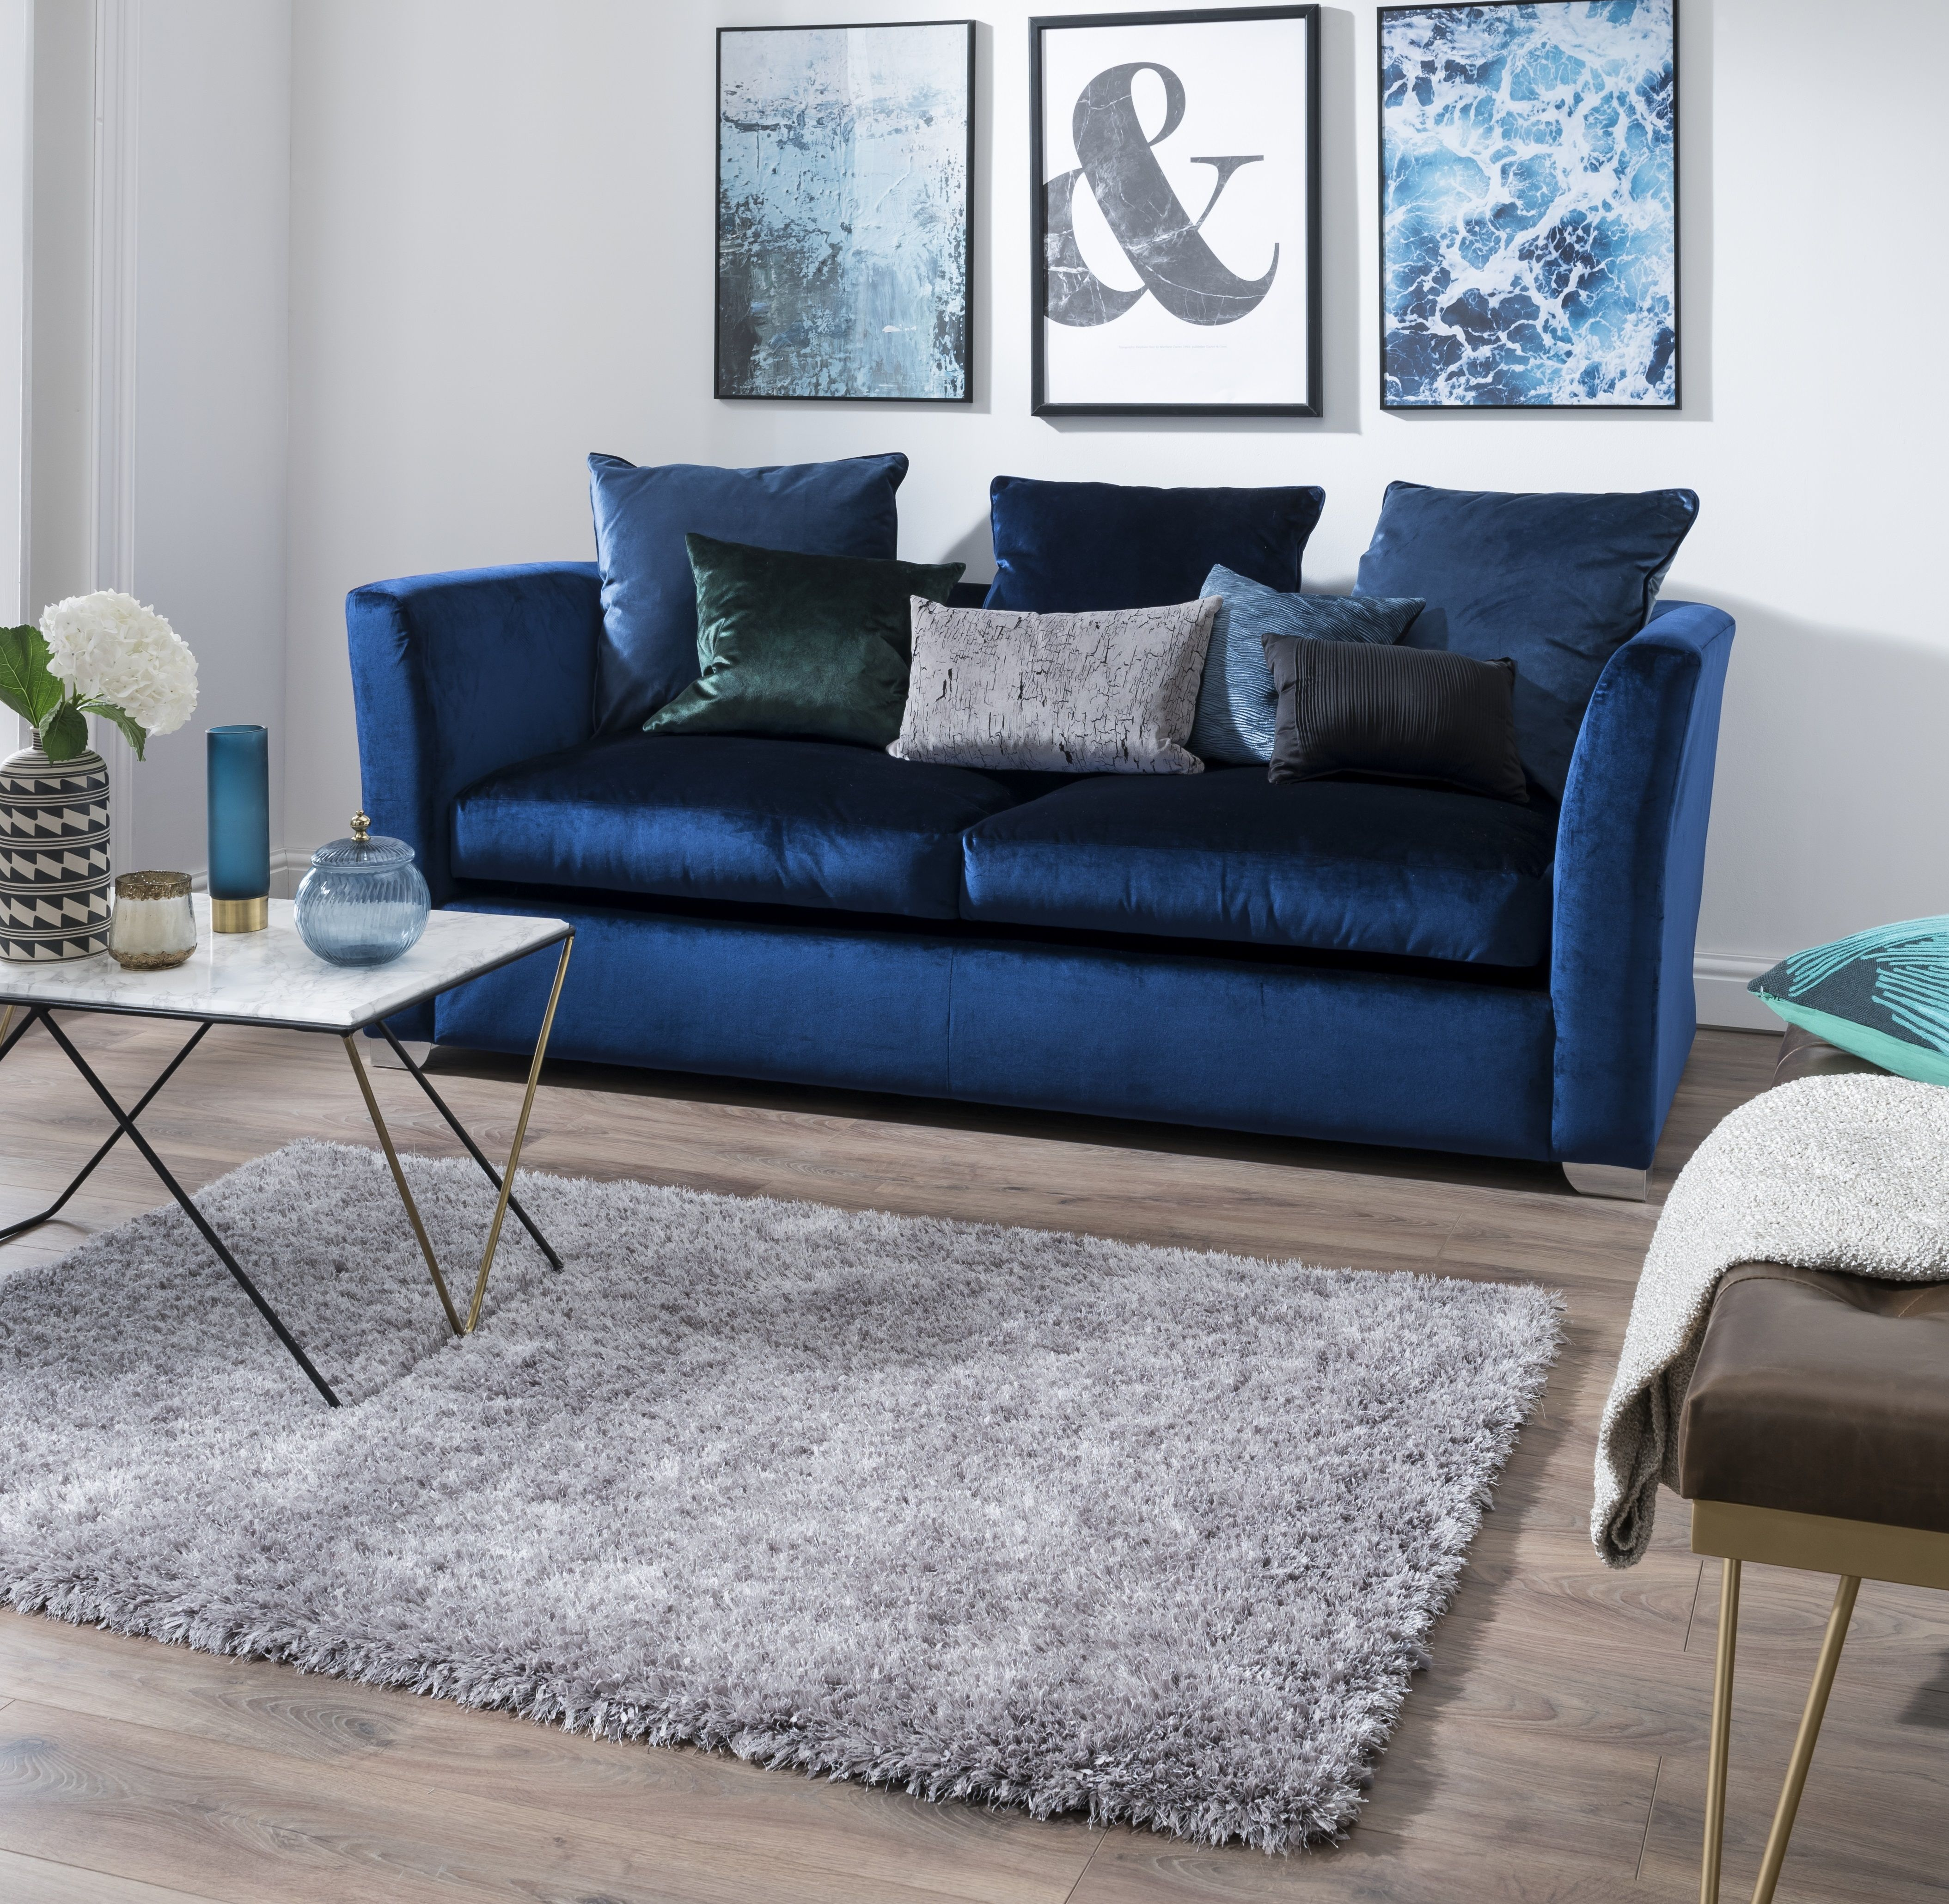 Pin by Carpetright on Our latest rugs Silver rug, Rugs